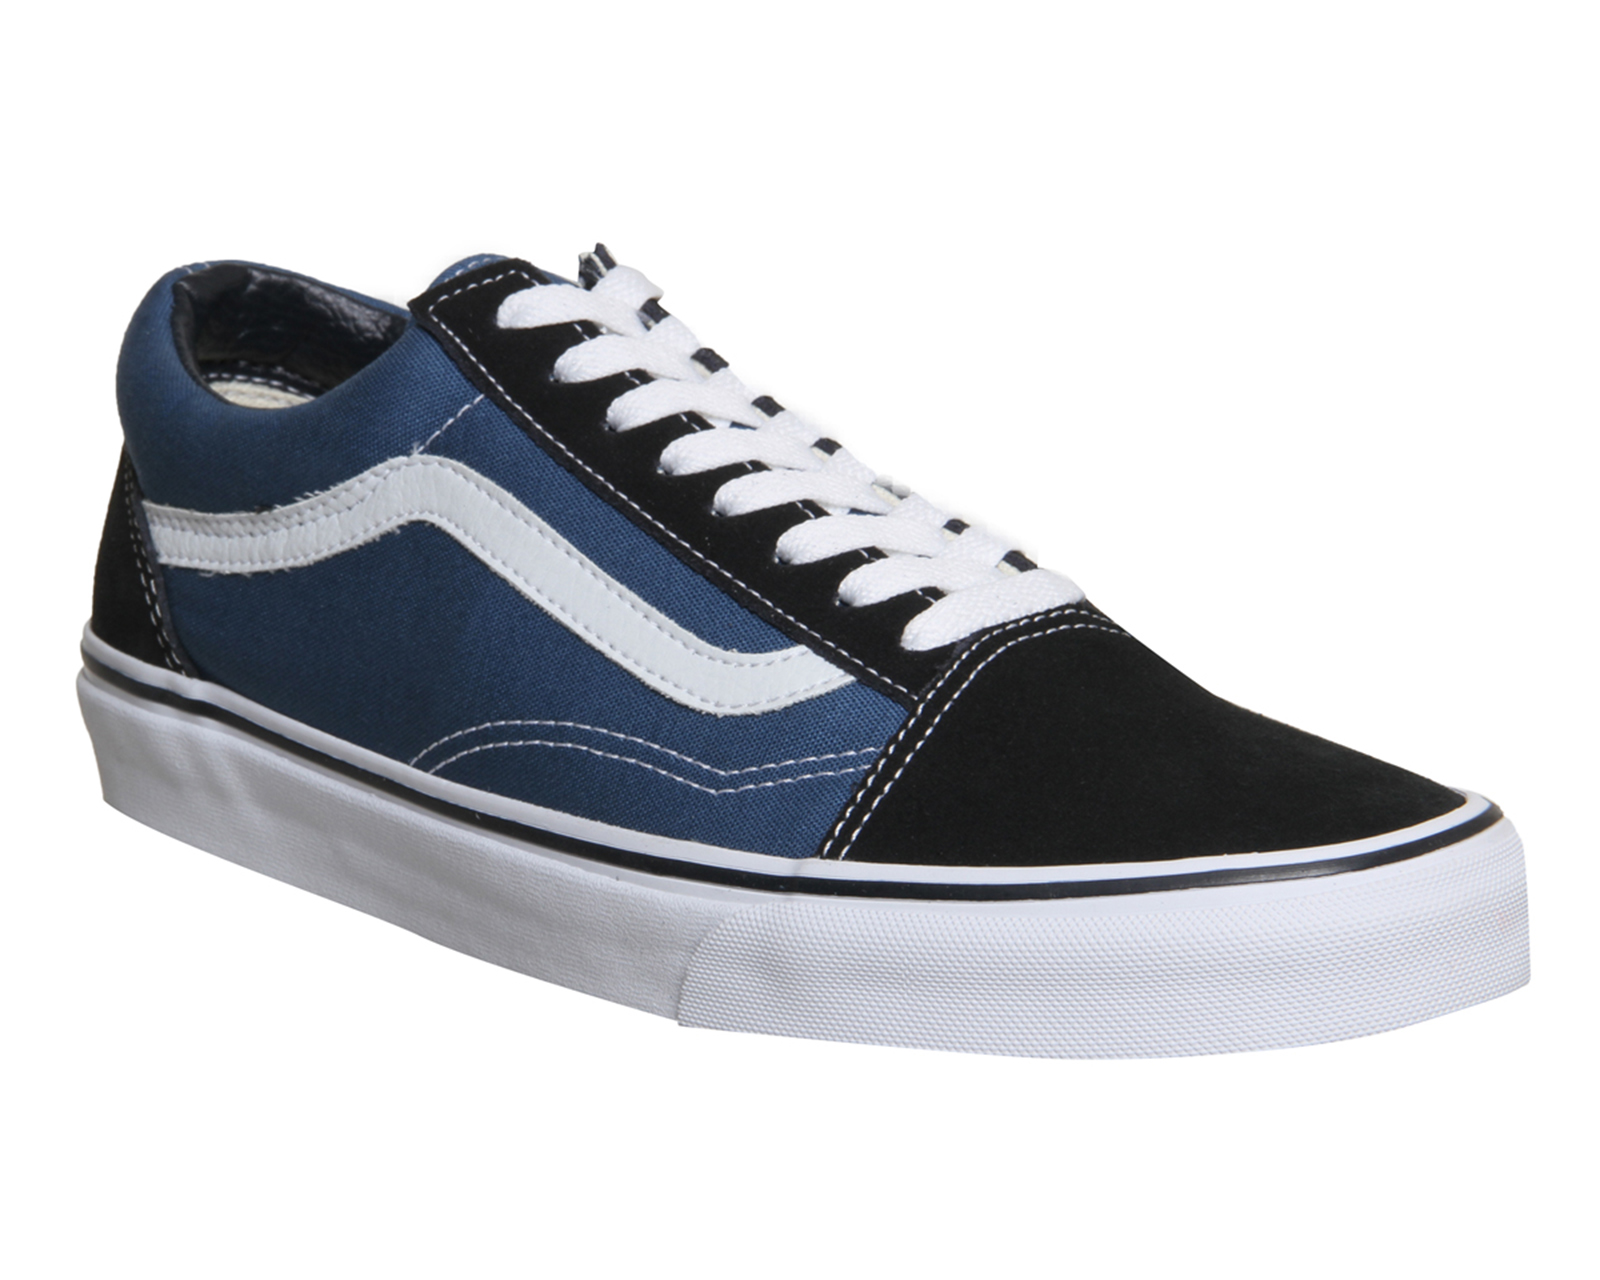 84007bf599fe Sentinel Mens Vans Old Skool Navy Trainers Shoes